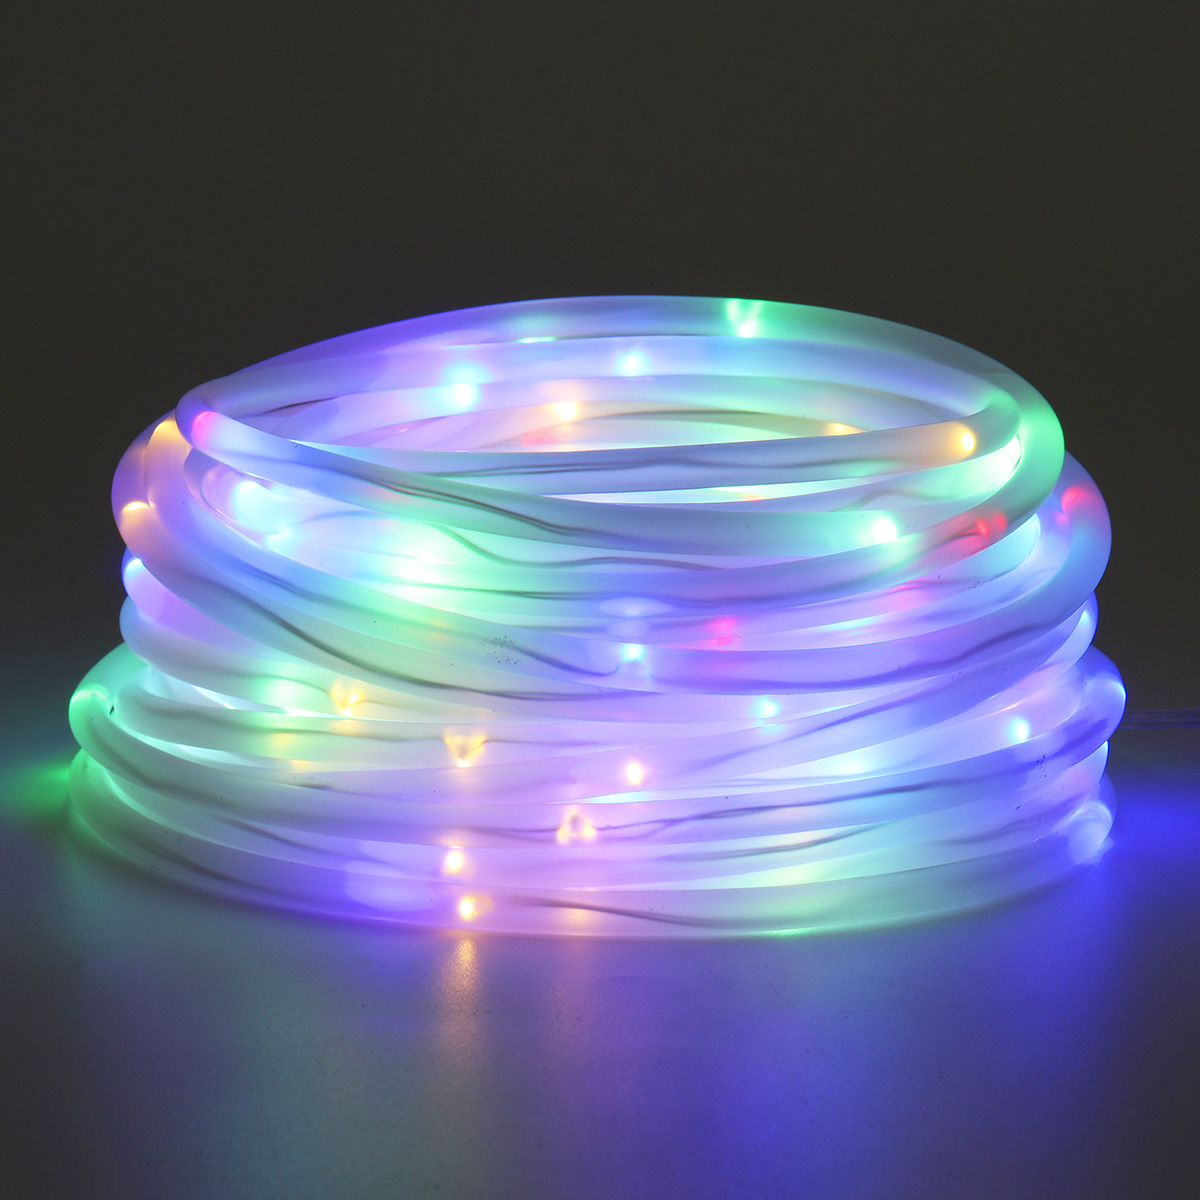 32 8ft Outdoor Led Rope Lights String Lights Christmas Fairy Lights Plug In 100 Leds Color Changing String Lights With Remote Waterproof For Outdoor Wedding Party Garden Home Walmart Com Walmart Com